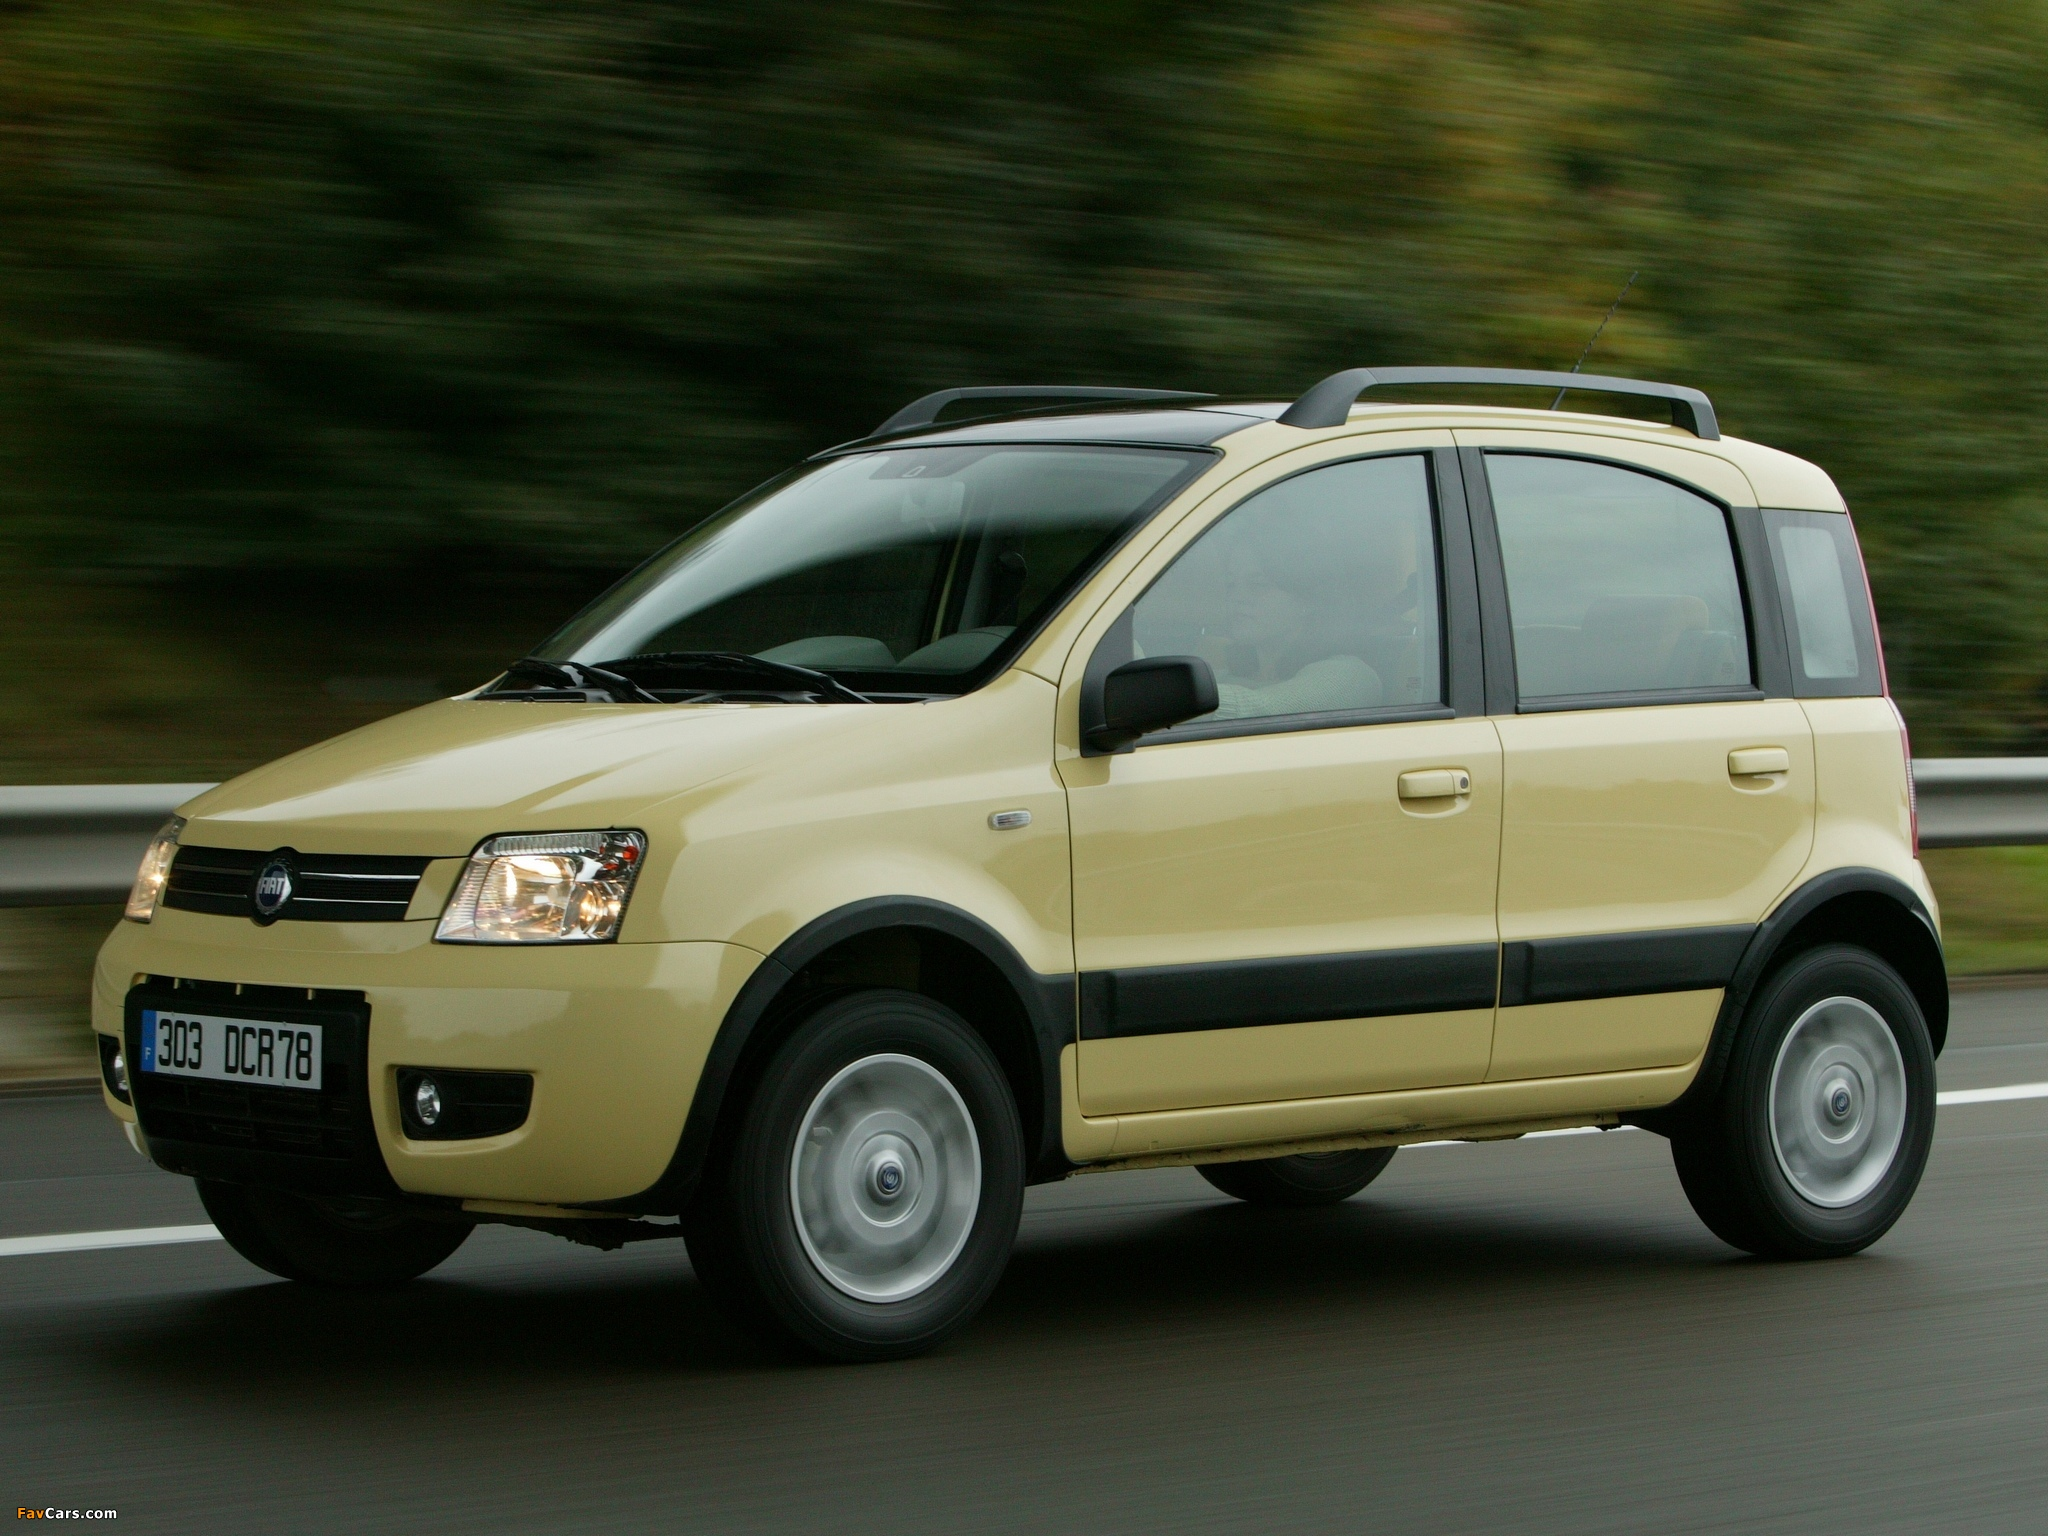 fiat panda 4x4 climbing 169 2004 images 2048x1536. Black Bedroom Furniture Sets. Home Design Ideas